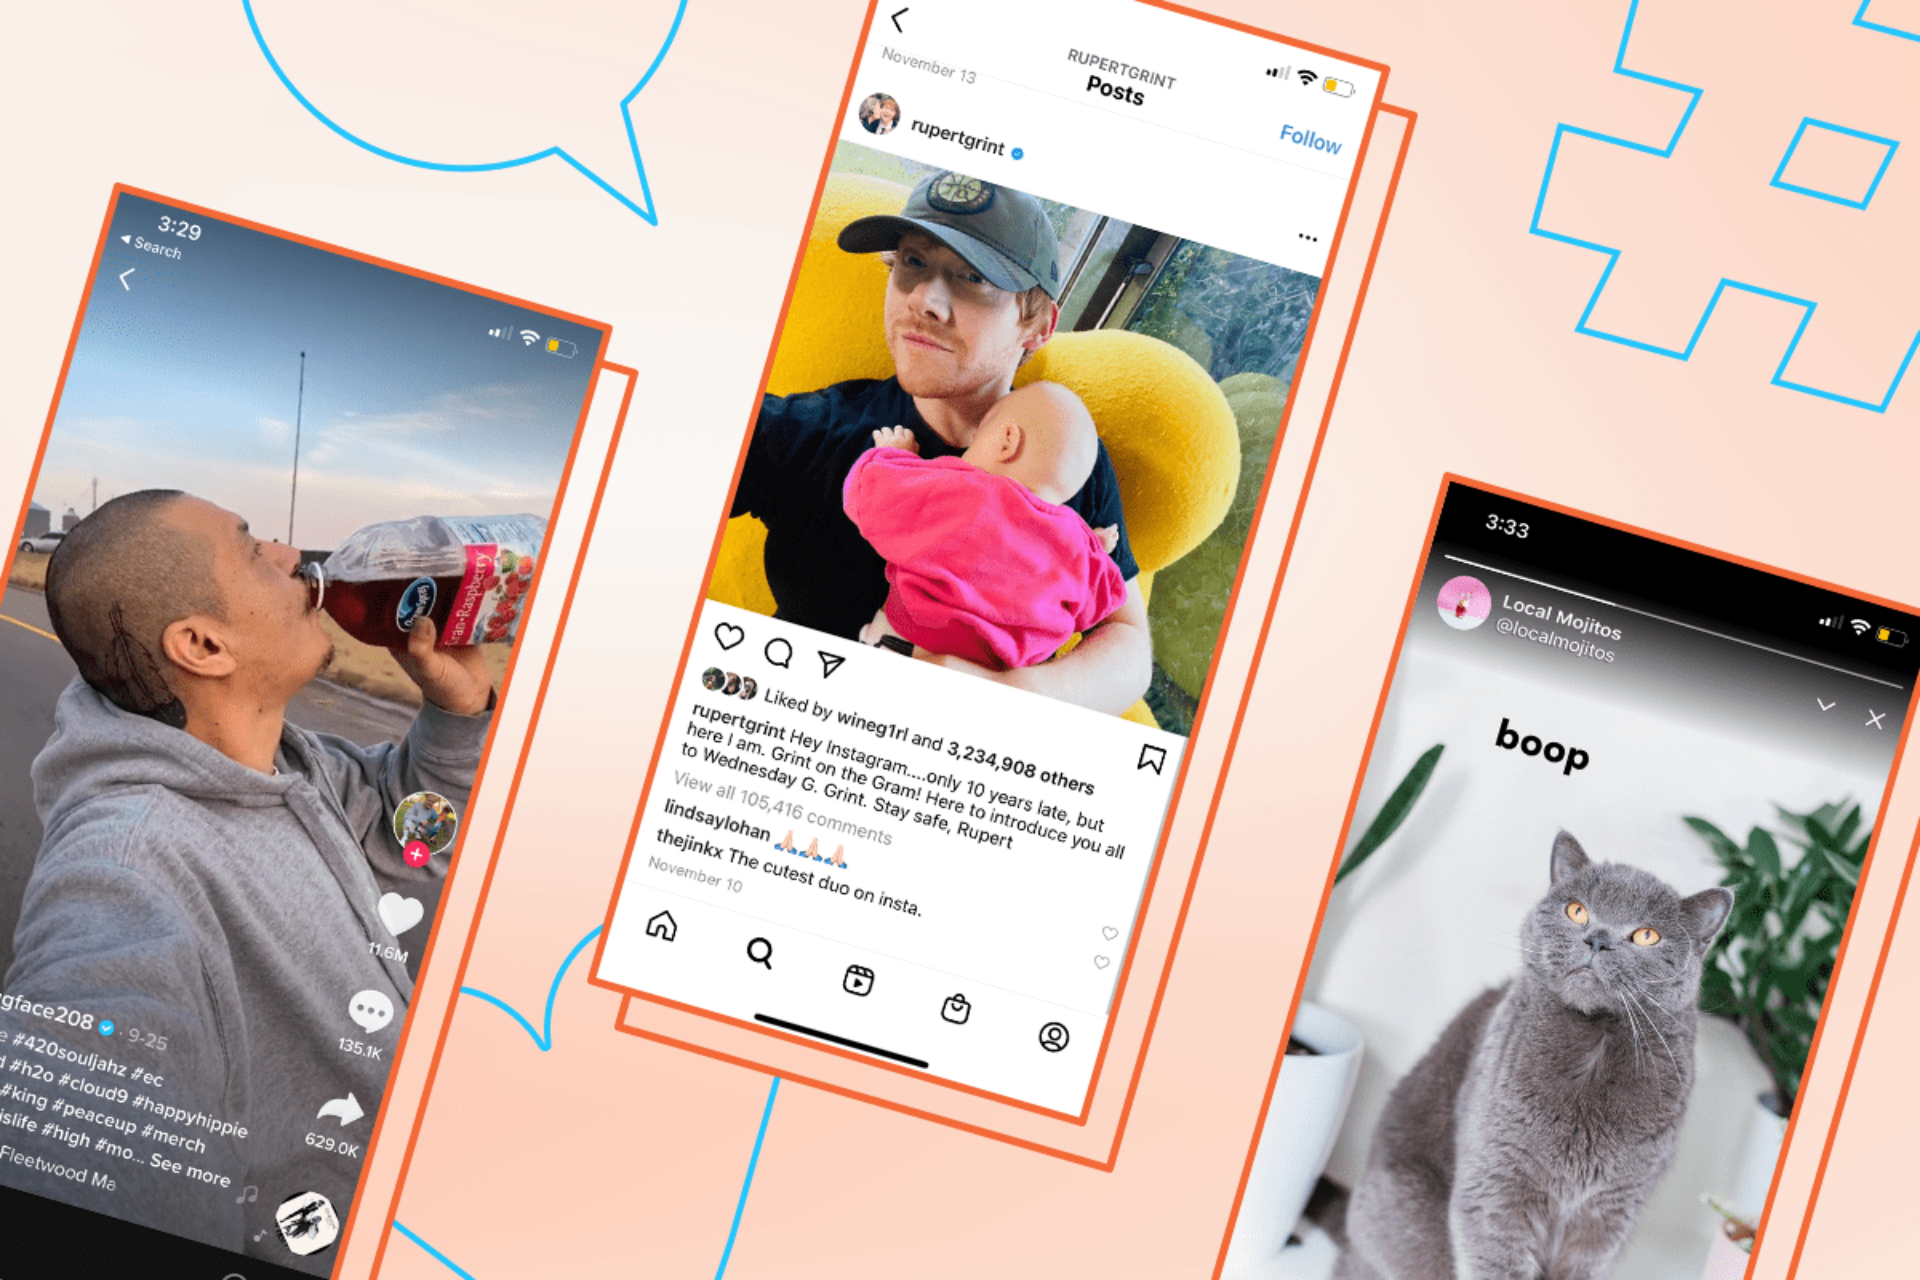 5 Social Media News Stories You Need to Read This Week